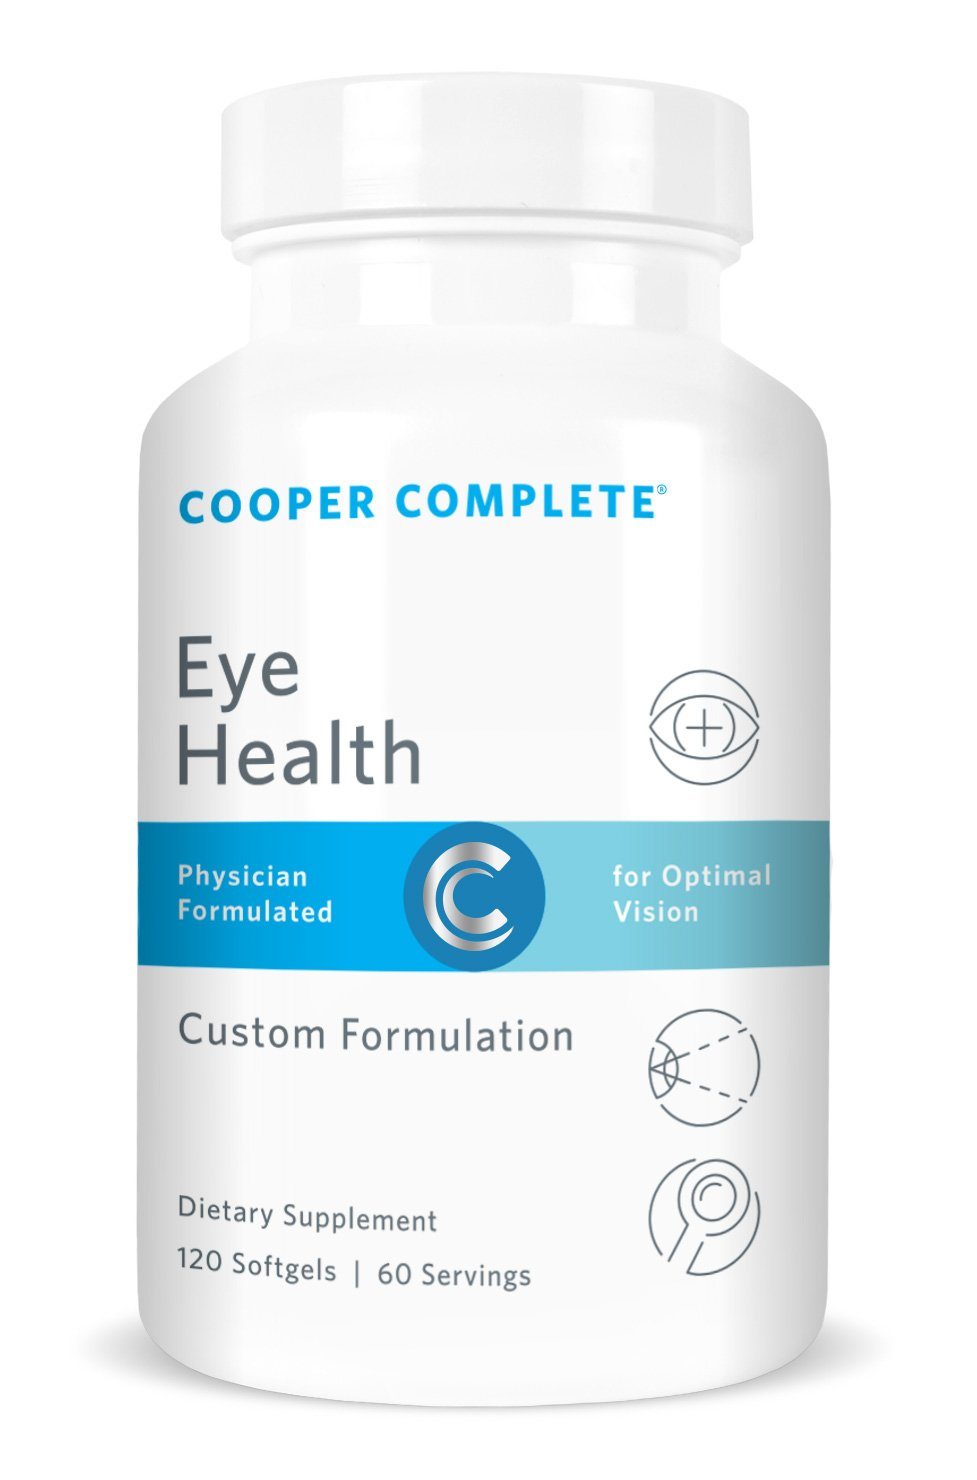 Cooper Complete - Eye Health Supplement - Lutein and Zeaxanthin, Vitamin C & E - 60 Day Supply